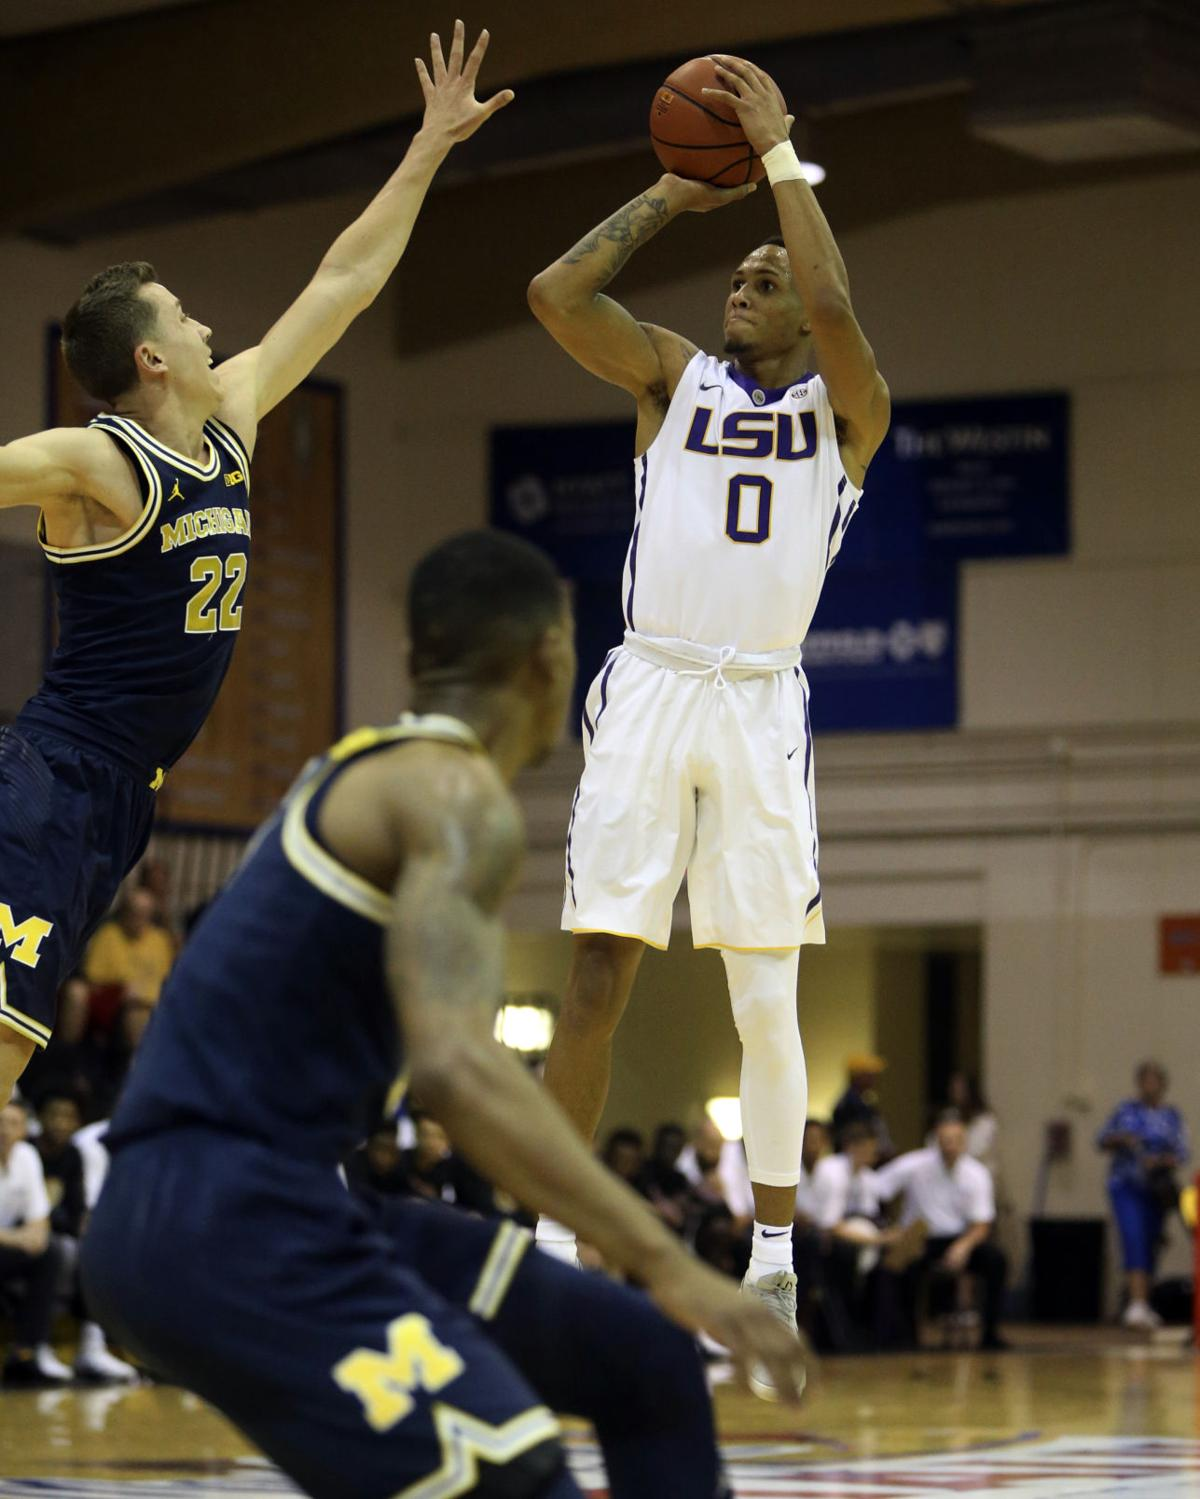 Outmanned: LSU loses Brandon Sampson early, then gets mowed down by ...